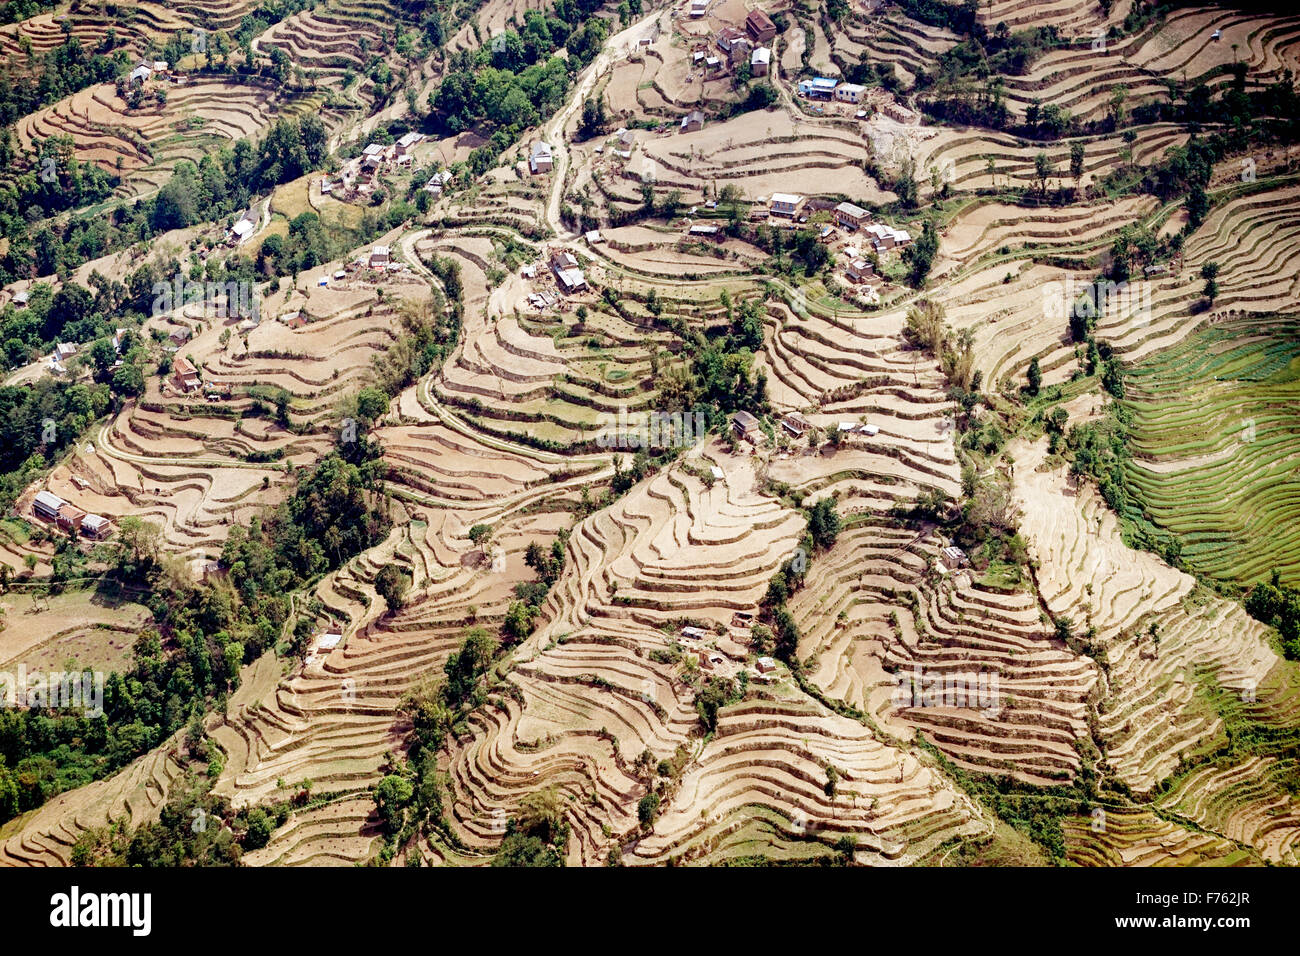 Terraced cultivation, kathmandu, nepal, asia - Stock Image